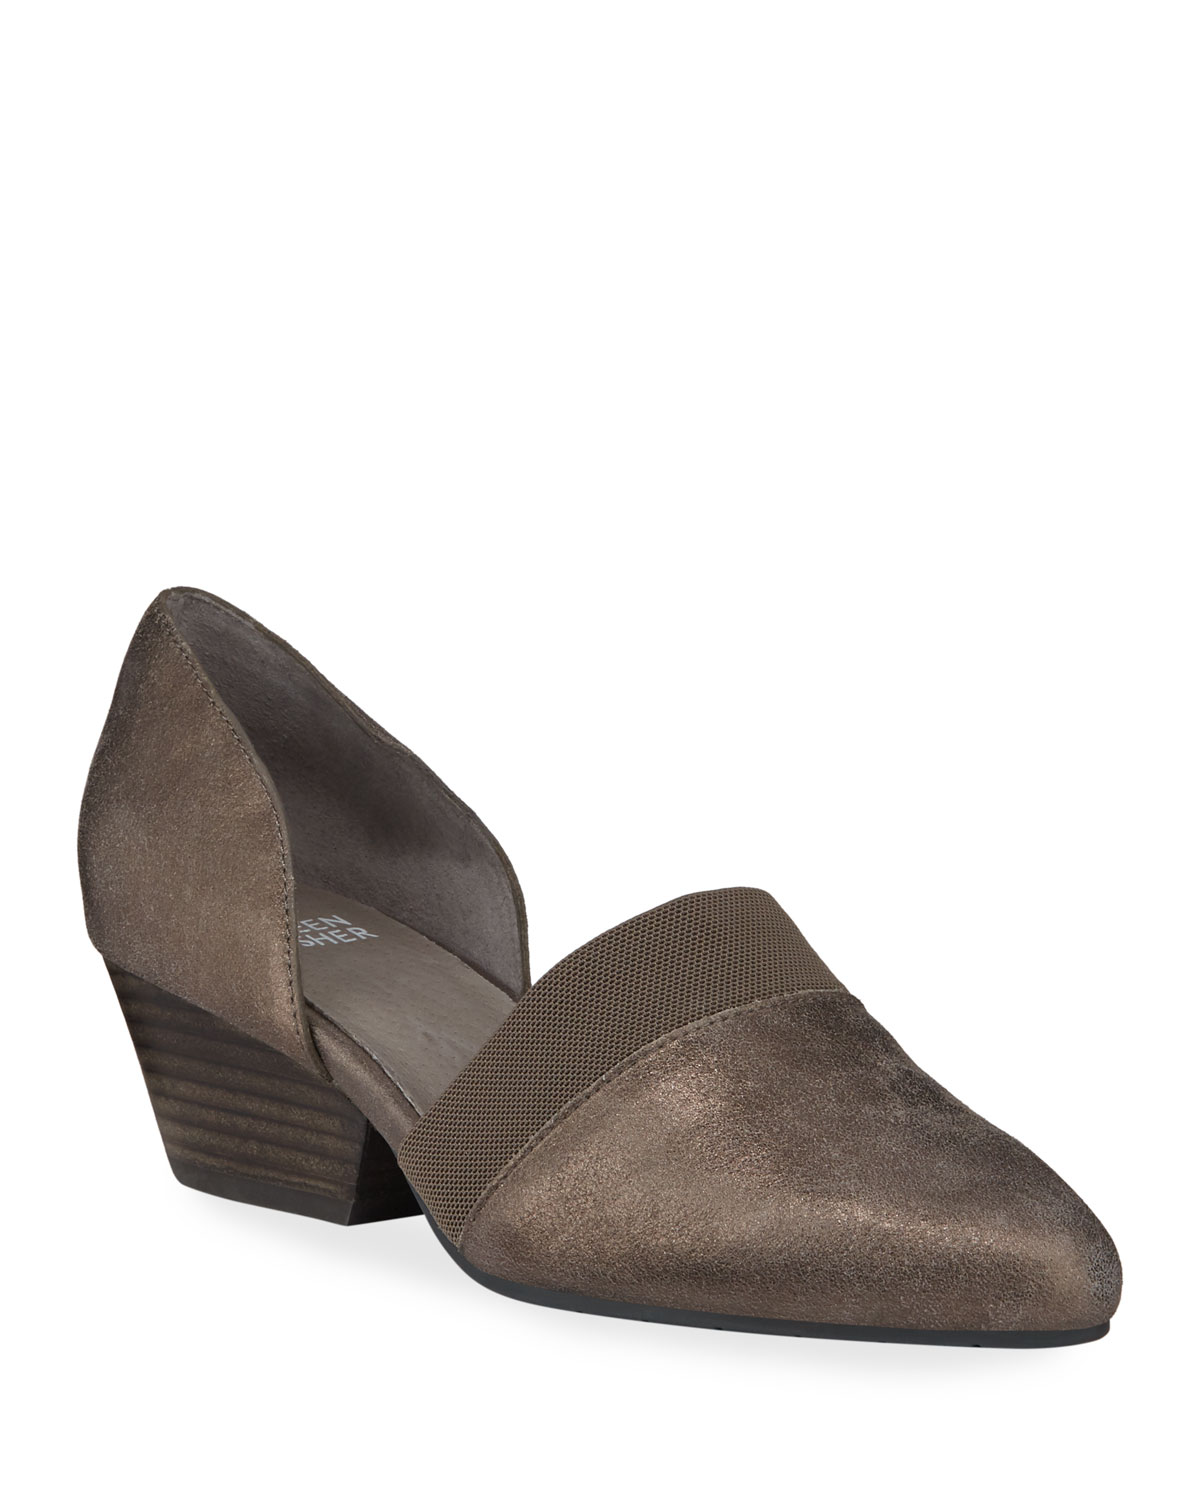 Hilly Easy Metallic Leather Demi-Wedge Pumps